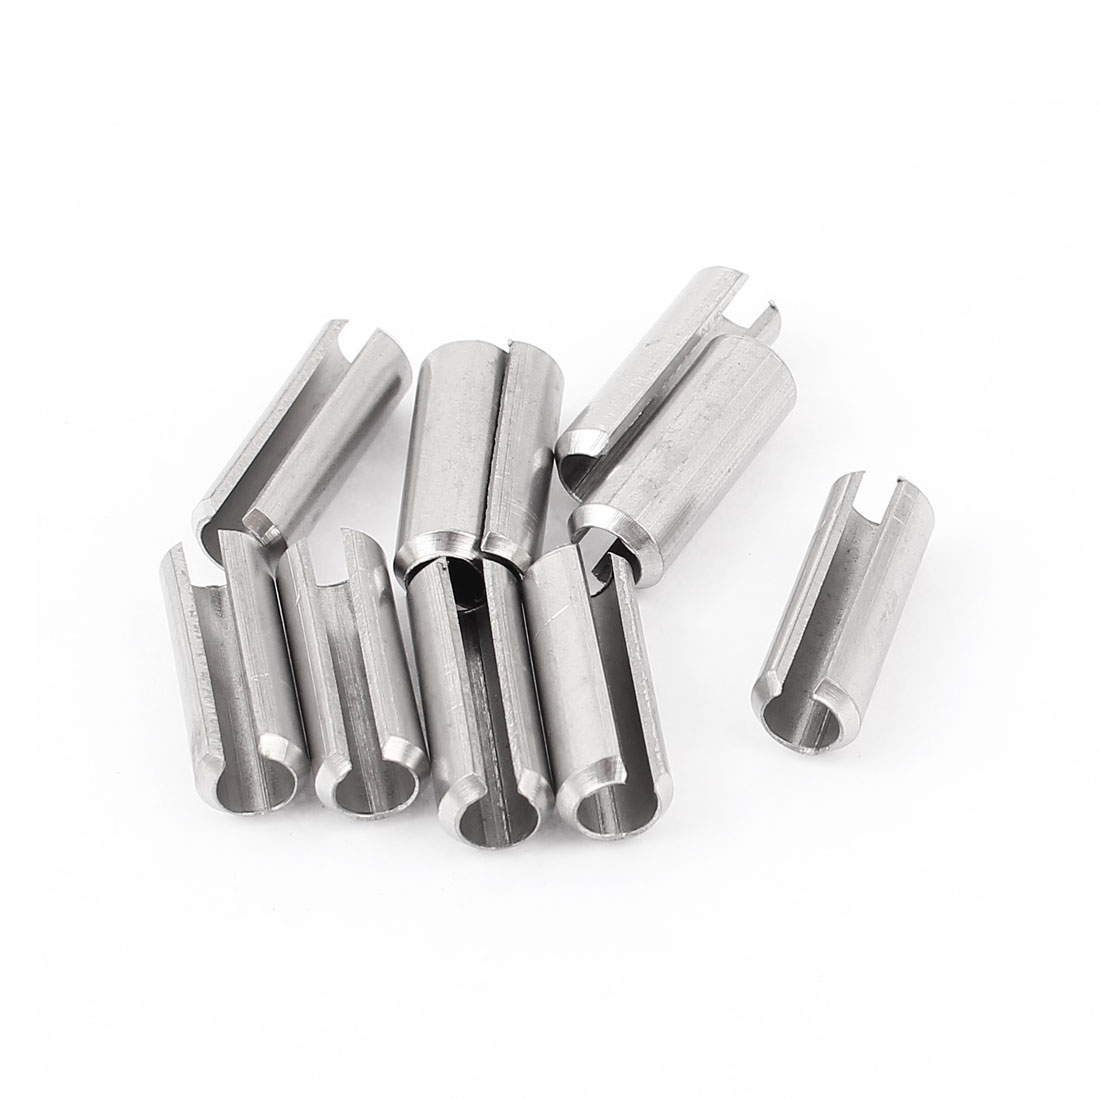 10 Pcs M8 x 25mm Silver Tone 304 Stainless Steel Split Spring Dowel Tension Roll Cotter Pin Fasteners